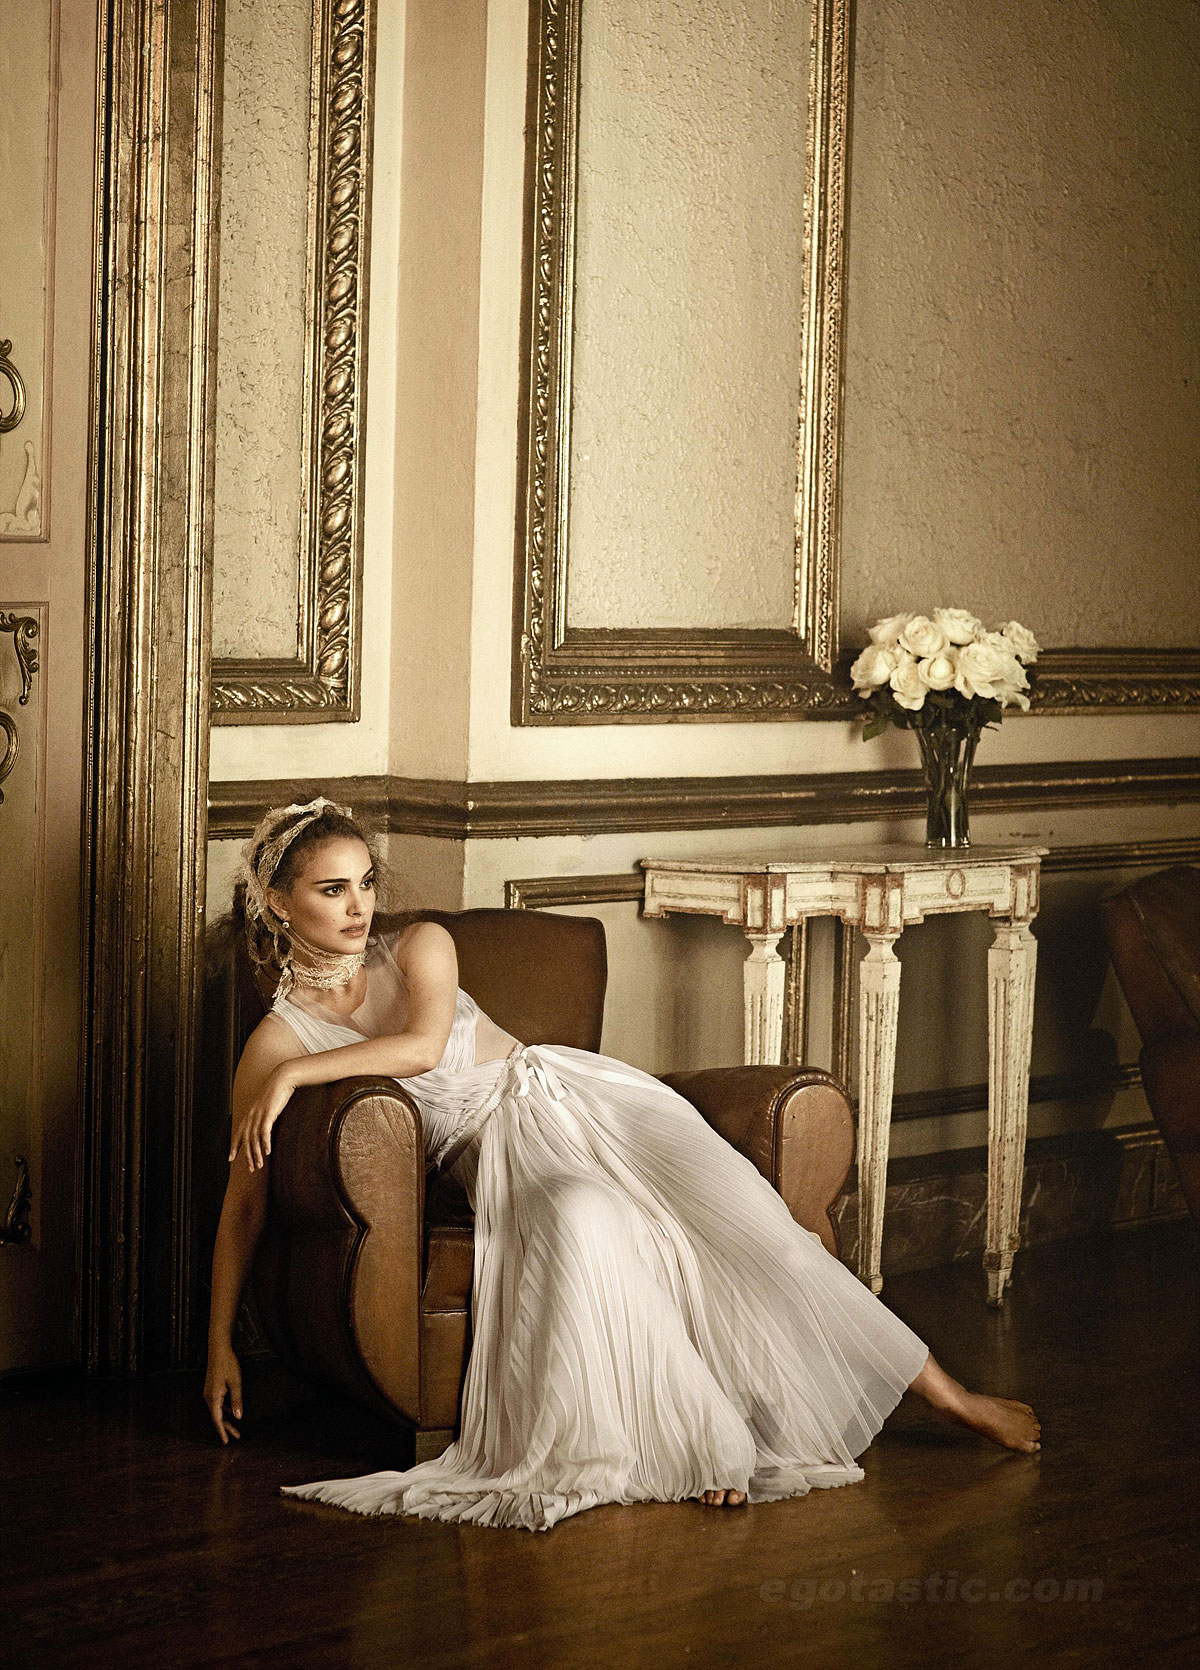 natalie-portman-jan-vogue-shoot-01